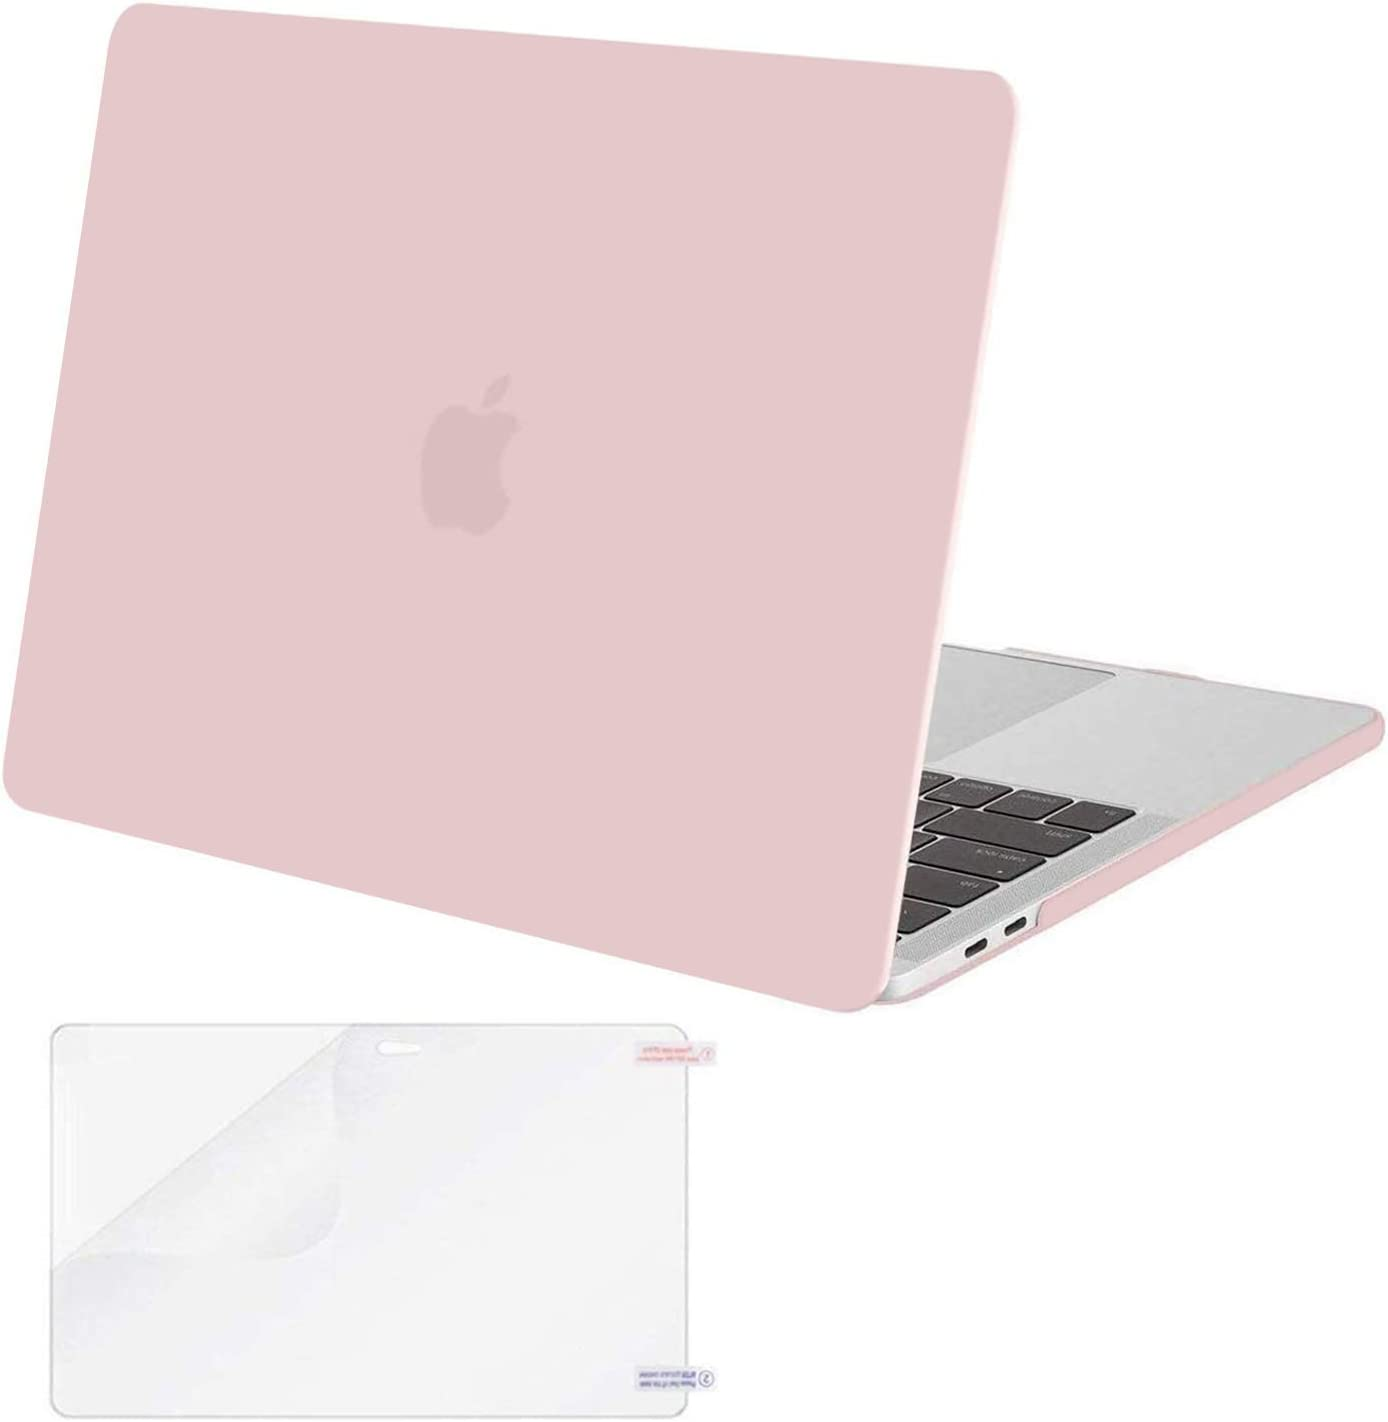 MOSISO MacBook Pro 13 inch Case 2019 2018 2017 2016 Release A2159 A1989 A1706 A1708, Plastic Hard Shell Case&Screen Protector Compatible with MacBook Pro 13 inch with/Without Touch Bar, Rose Quartz